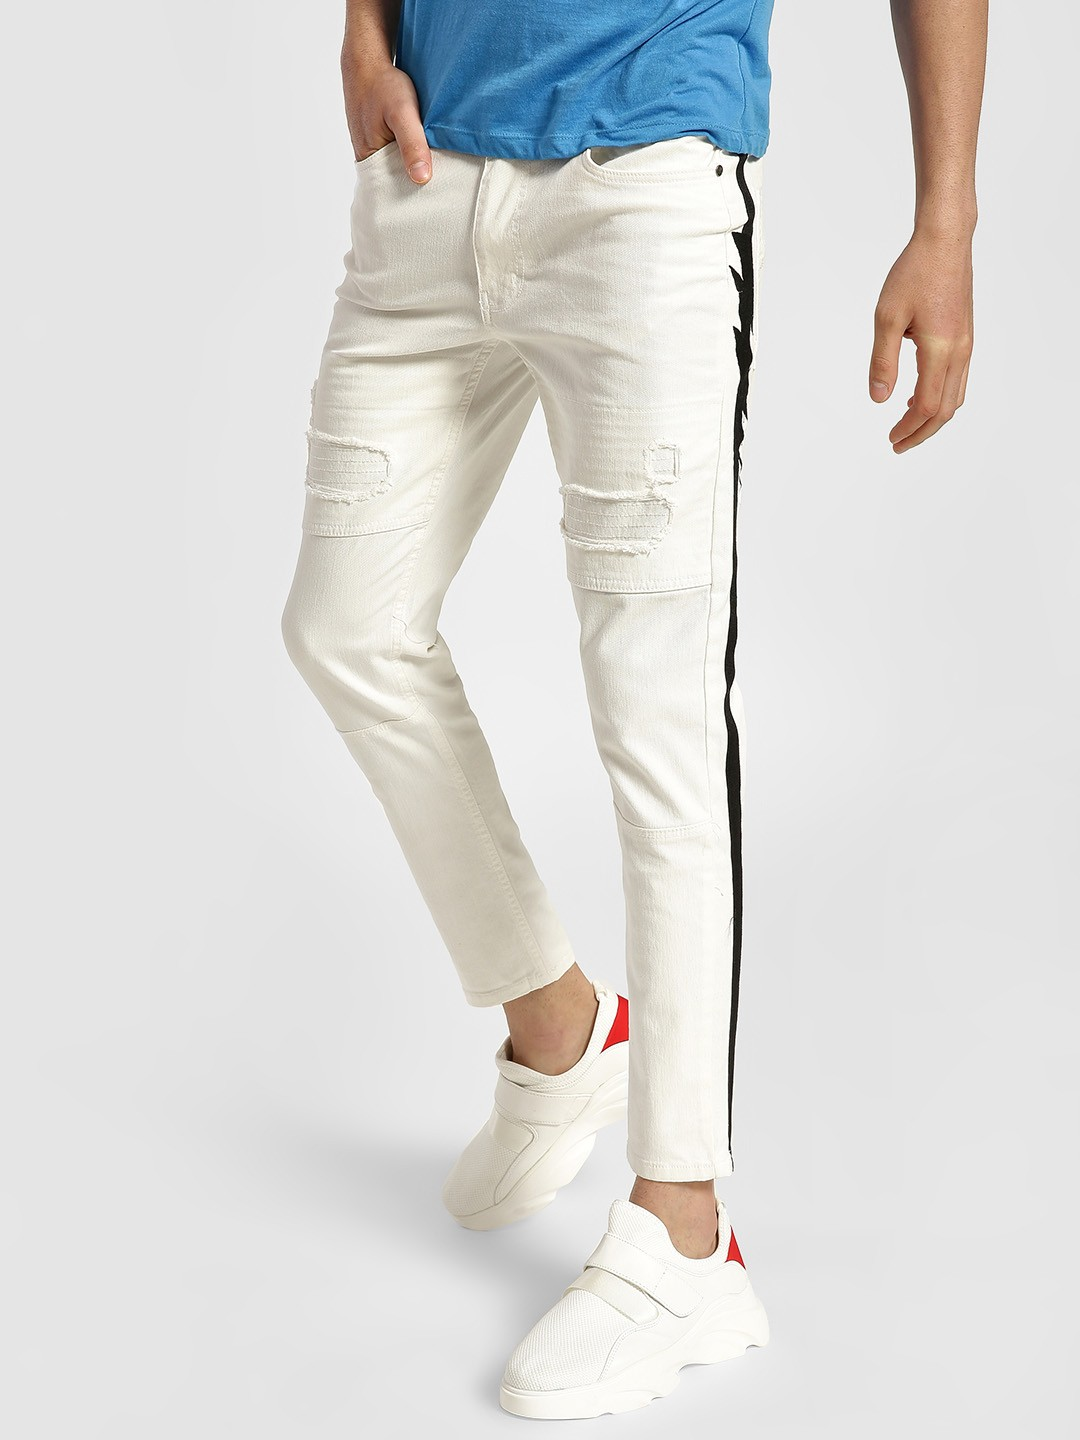 Kultprit White Contrast Side Tape Distressed Panelled Jeans 1